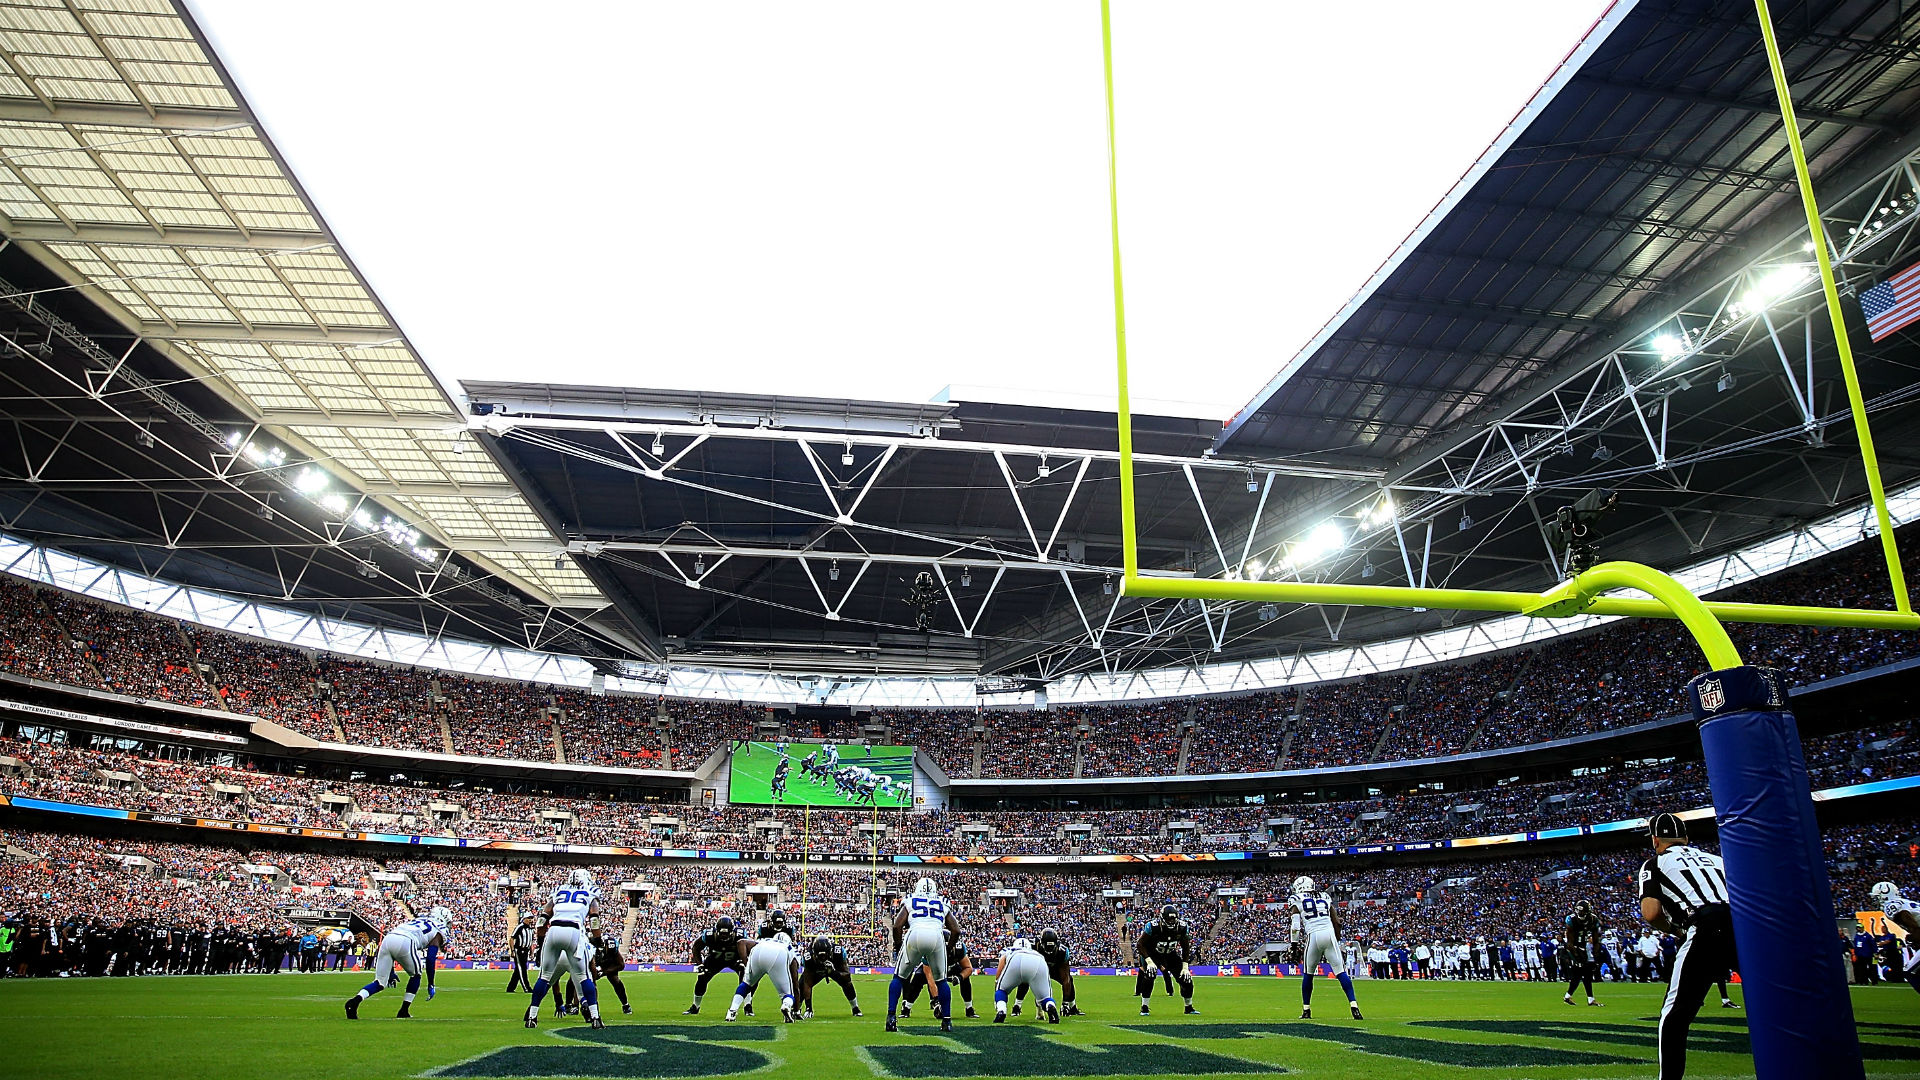 What's on at Wembley arena? Matches, gigs, NFL & events